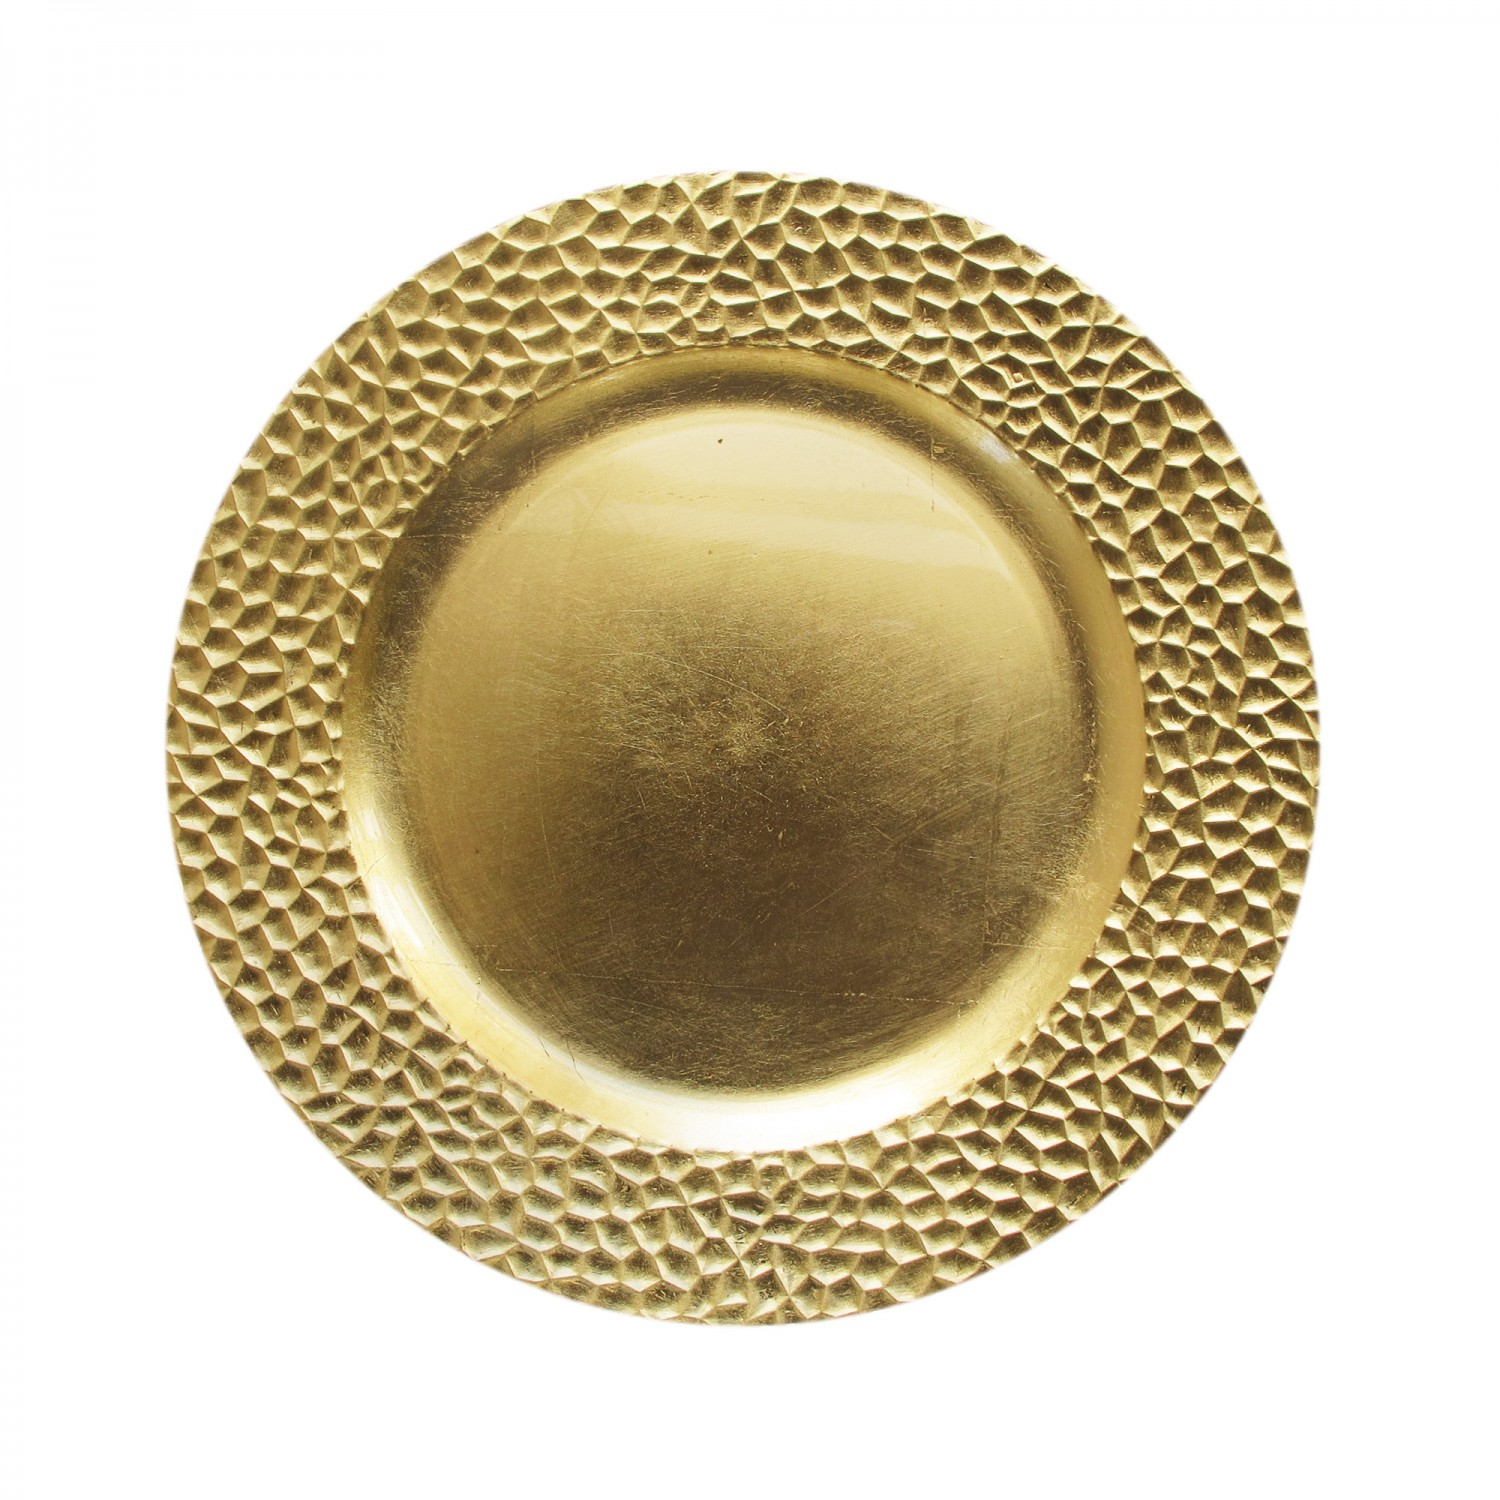 The Jay Companies 1182763 Round Gold Hammered Charger Plate 13""